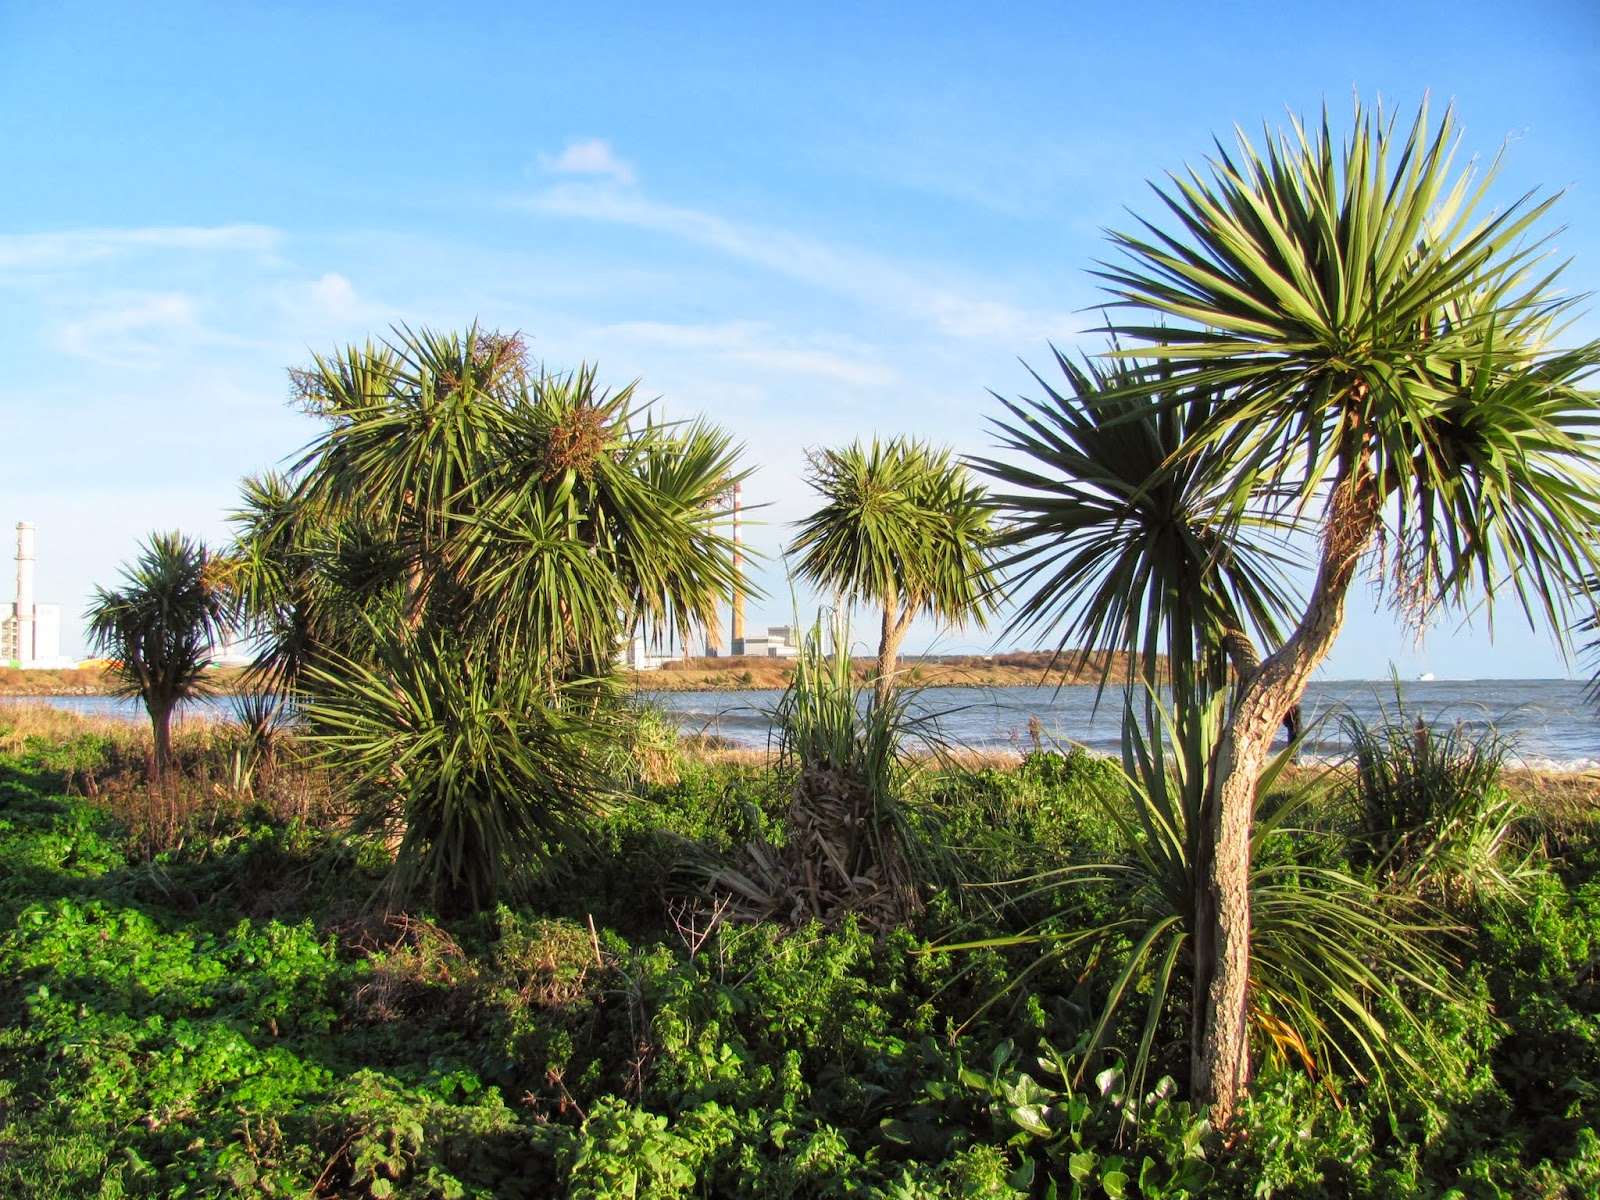 Palm trees on Sandymount Strand in Dublin, Ireland